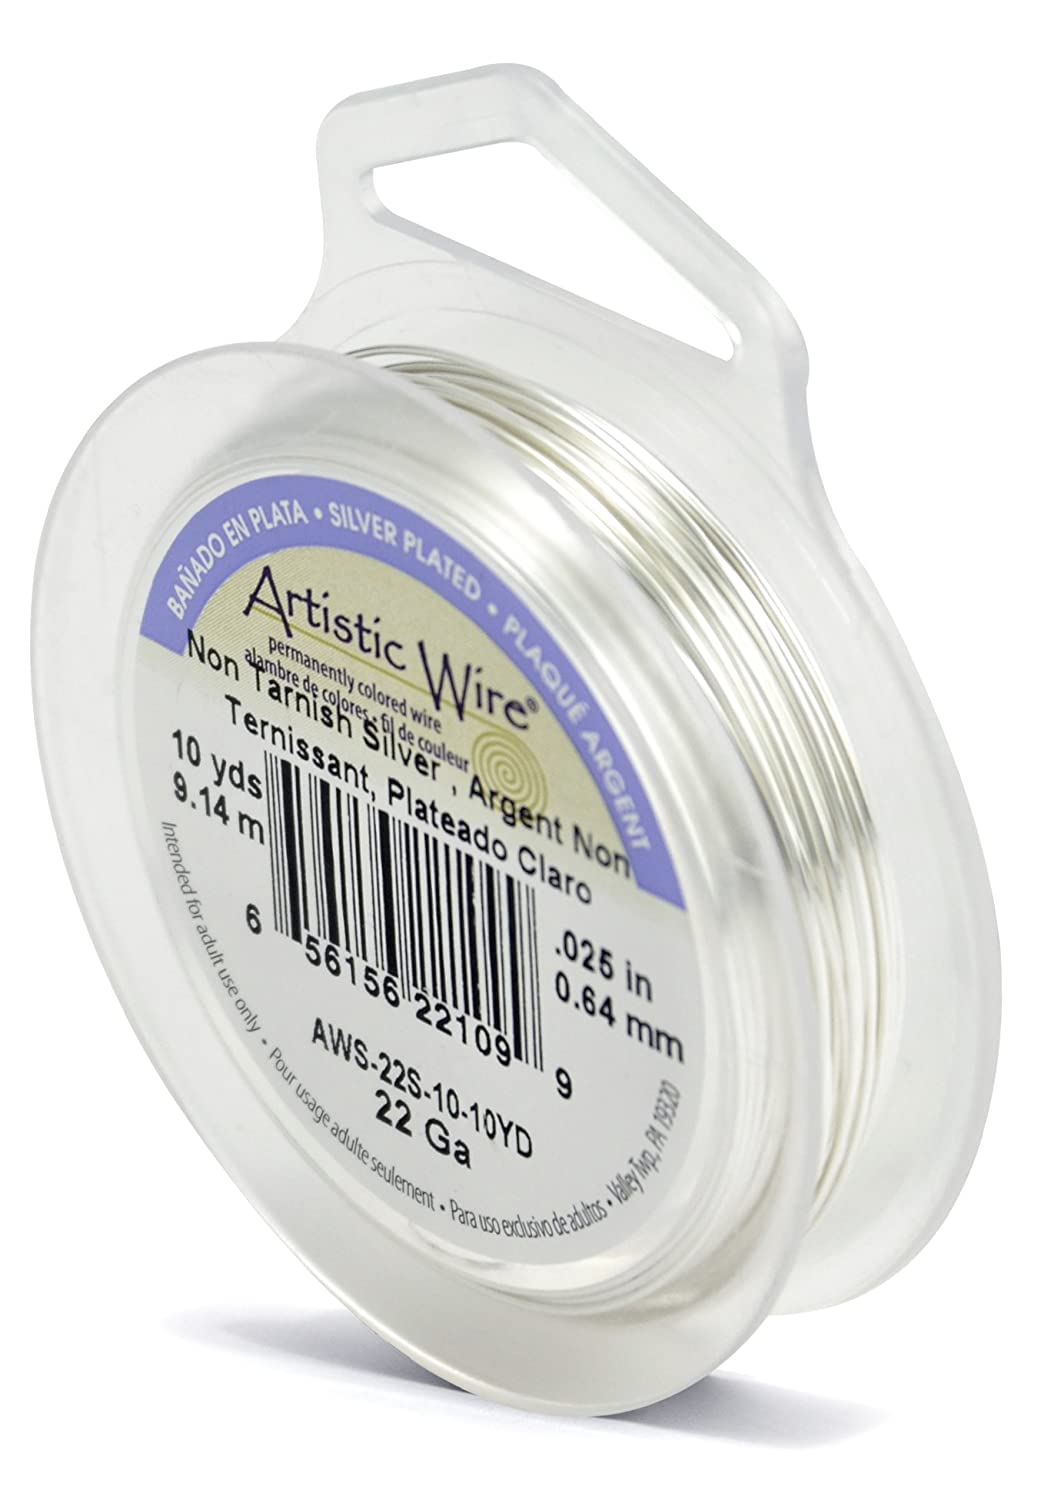 Artistic Wire 22-Gauge Tarnish Resistant Silver Wire, 10-Yard AWS-22S-10-10YD